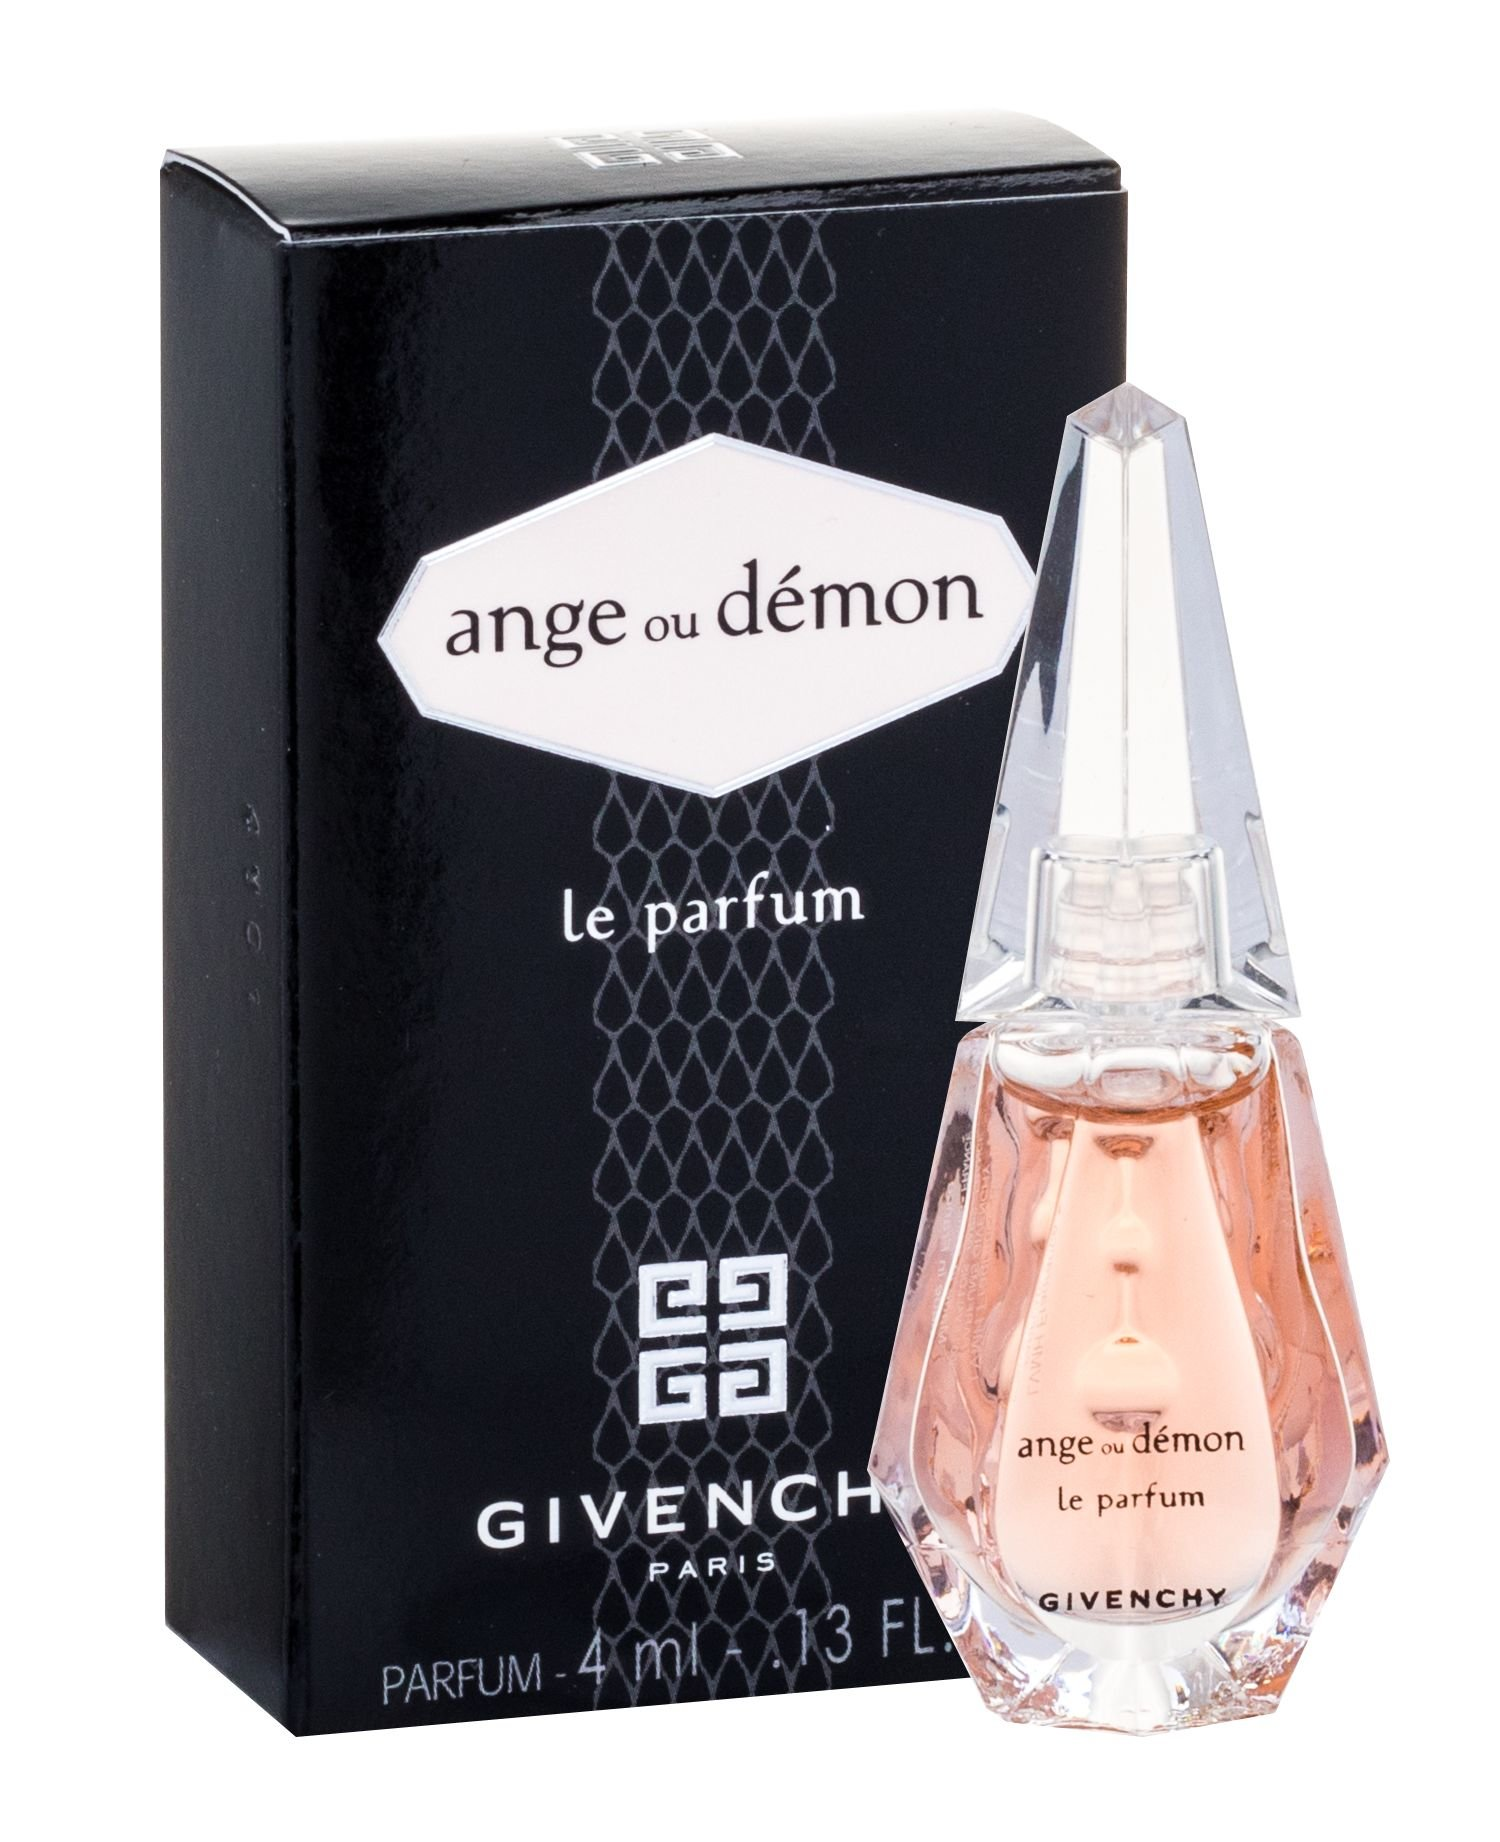 Givenchy Ange ou Demon Le Parfum Perfume 4ml